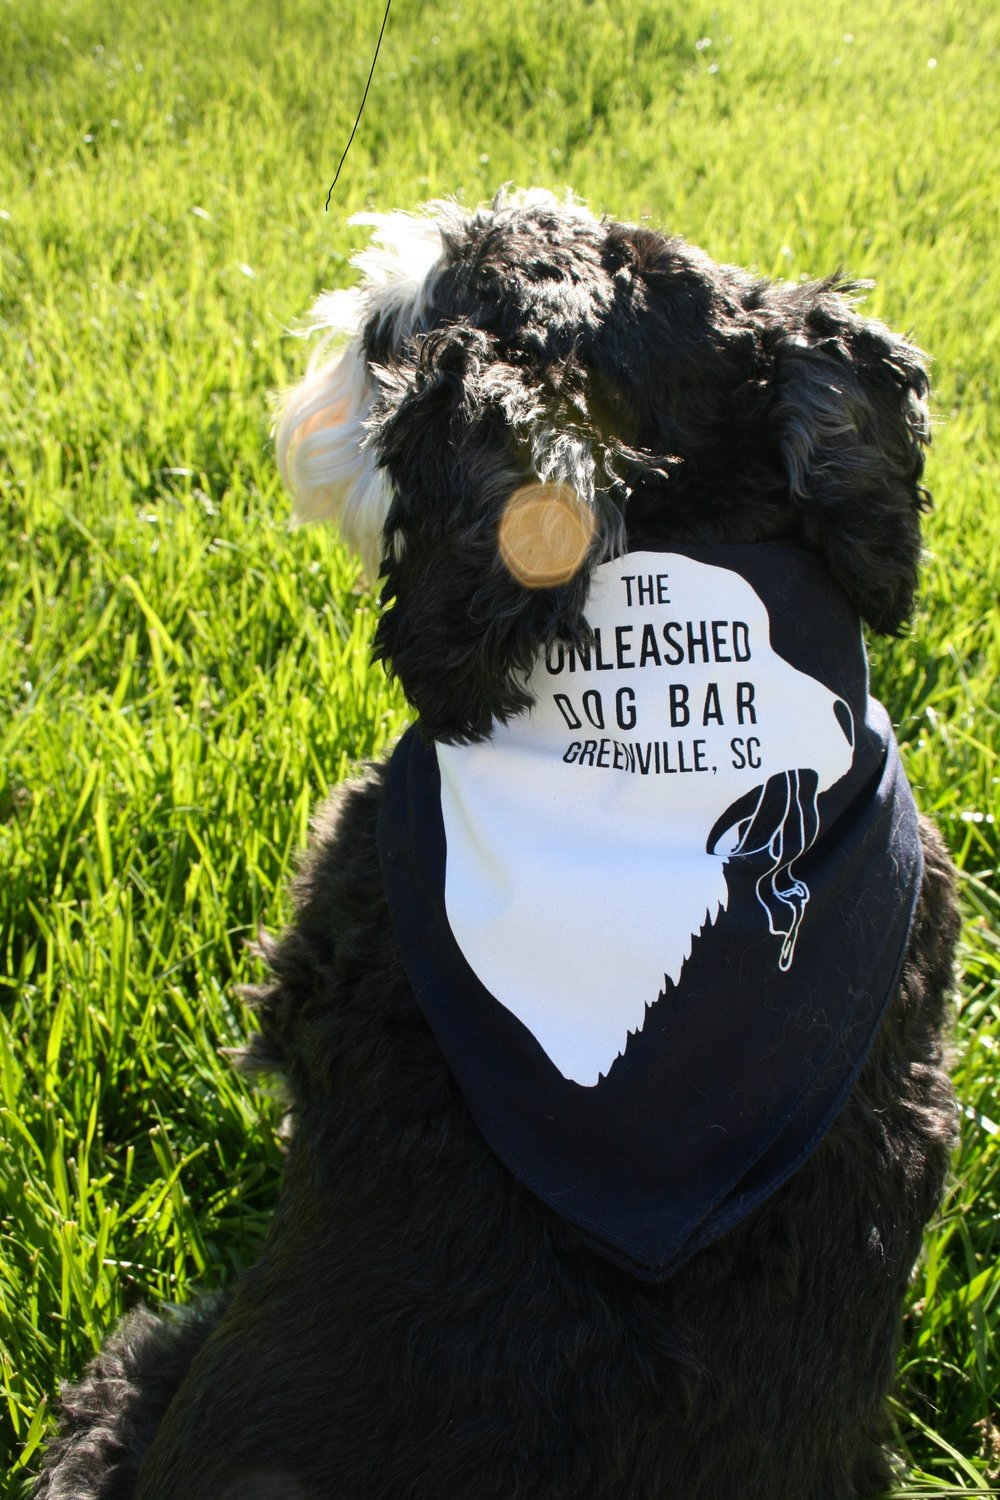 Seeking Full-time and Part-time Bartenders - As a bartender for The Unleashed Dog Bar, you will work in a fun, team-oriented, dog centric environment to provide the best experience for all our patrons (humane and canine)!We are looking for enthusiastic, dog loving individuals with previous bar, restaurant, hospitality, or other service industry experience.See below for job description details and how to apply!